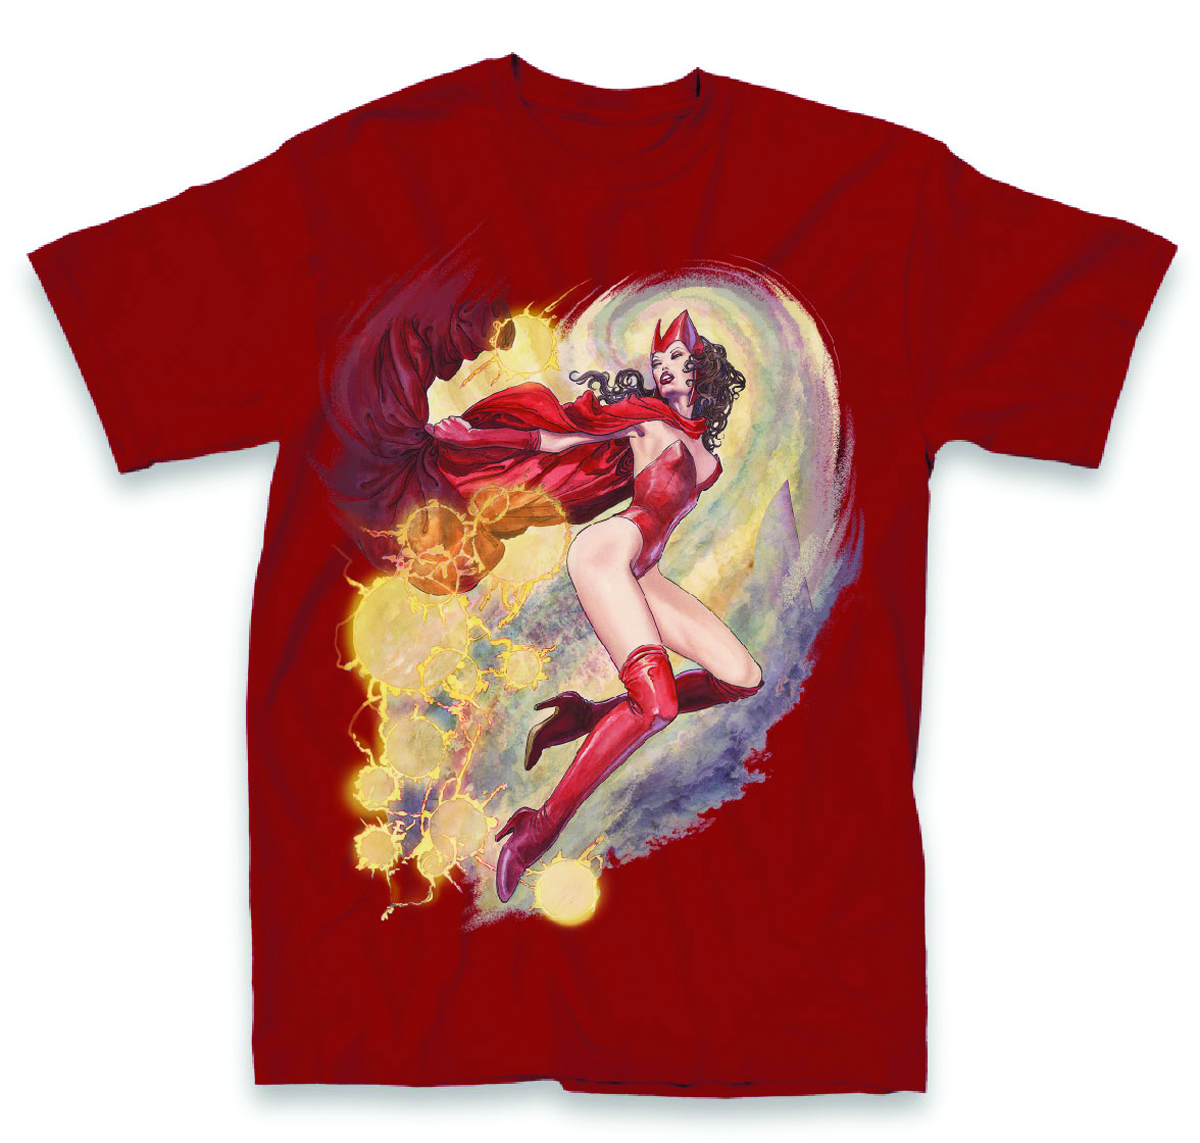 AVENGERS SCARLET WITCH PX CARDINAL T/S XL